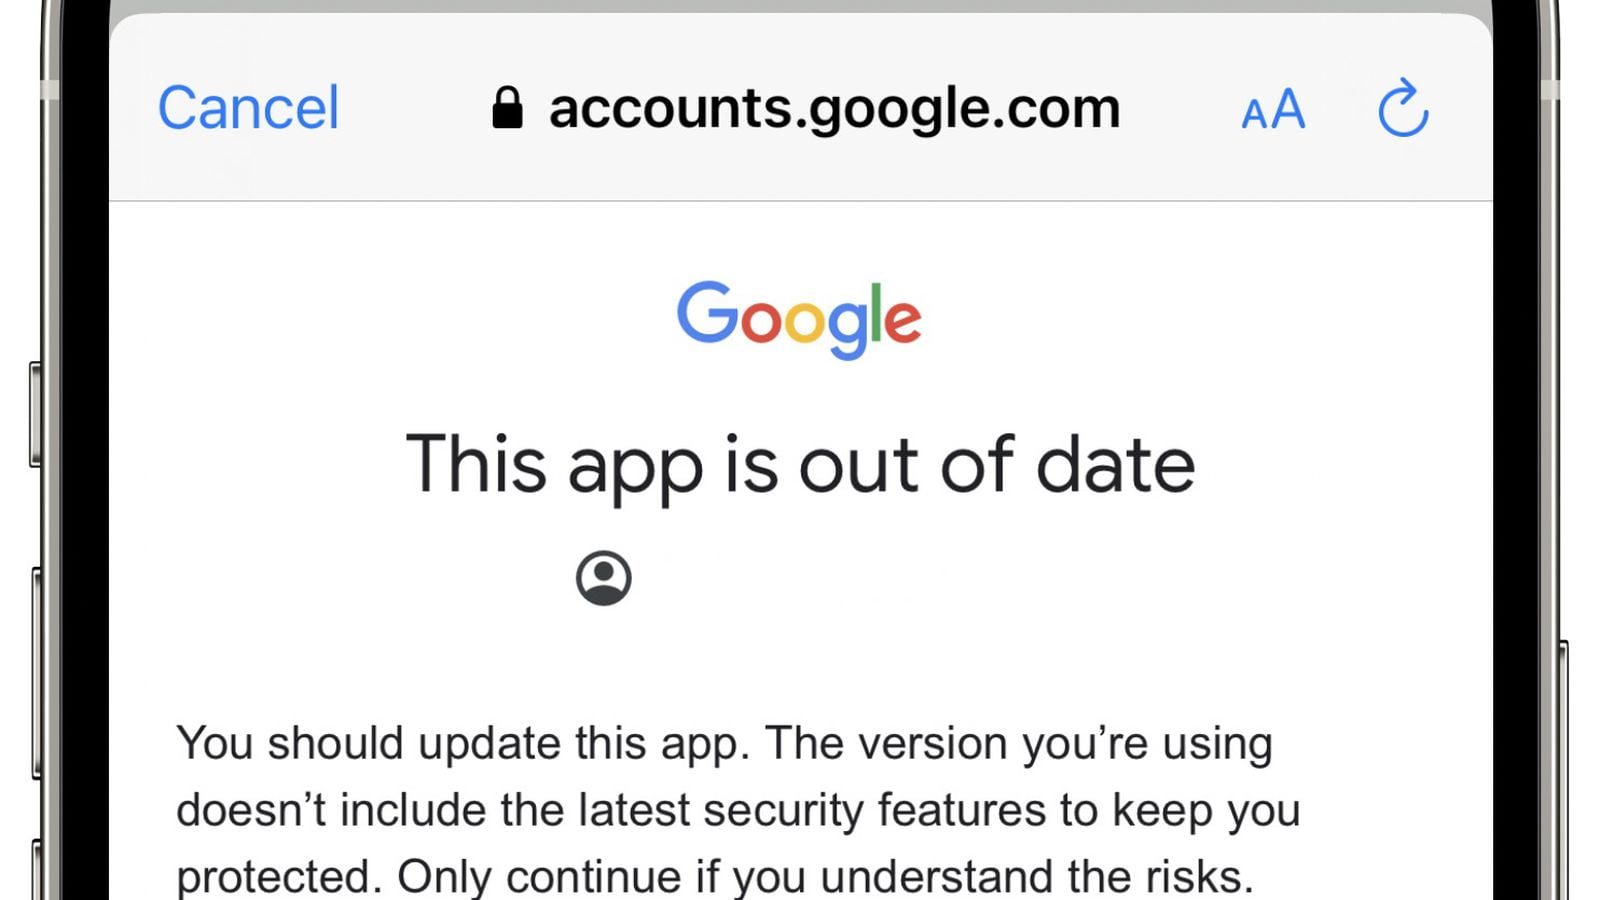 Gmail's iOS app has been showing 'out of date' warning because of a bug